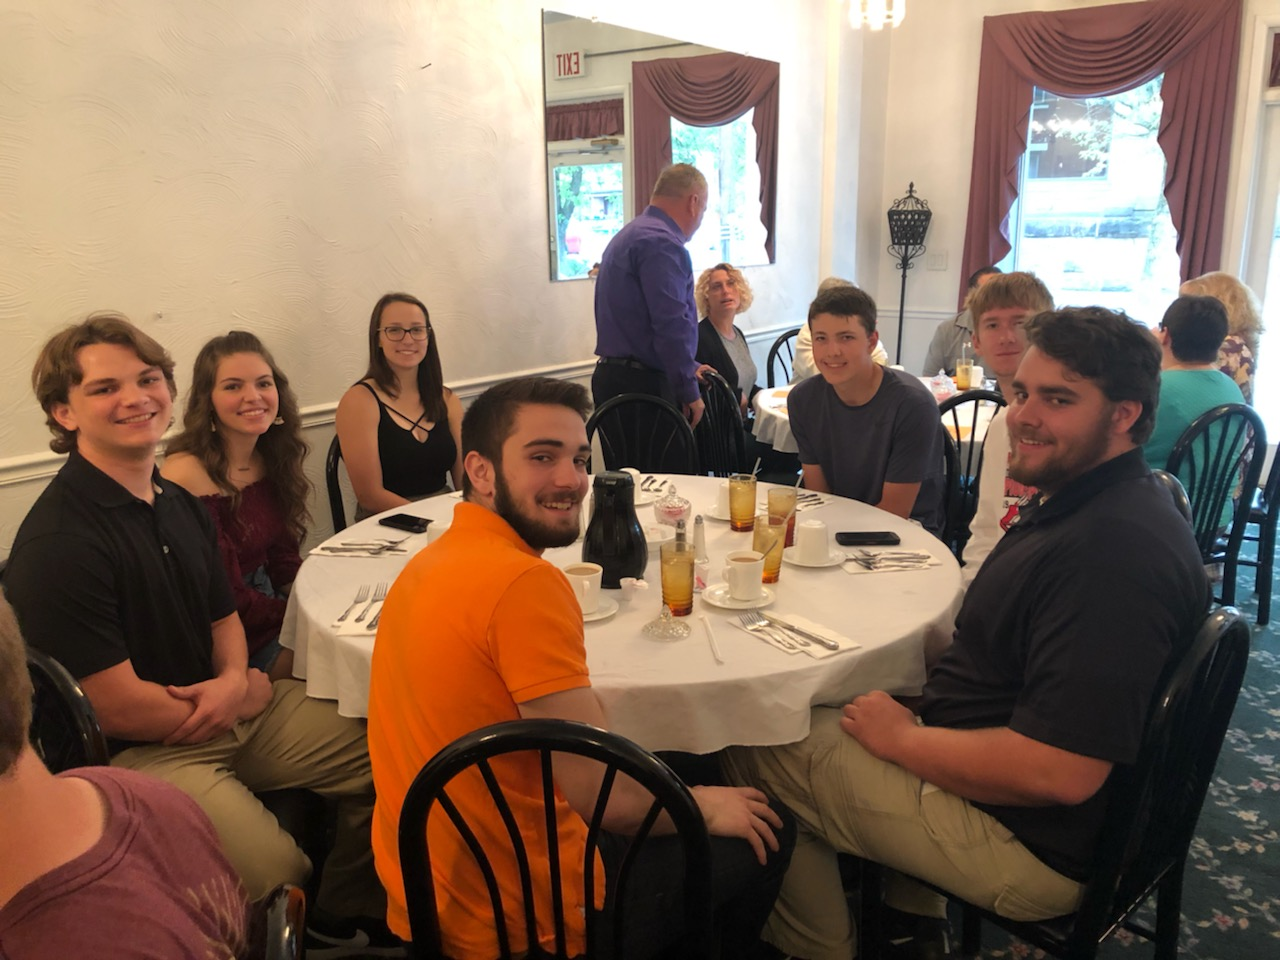 Scholar Athletes/Tri Athletes at their Awards Ceremony/Luncheon at Gary's Chuckwagon in West Newton on Friday, May 17th, 2019.